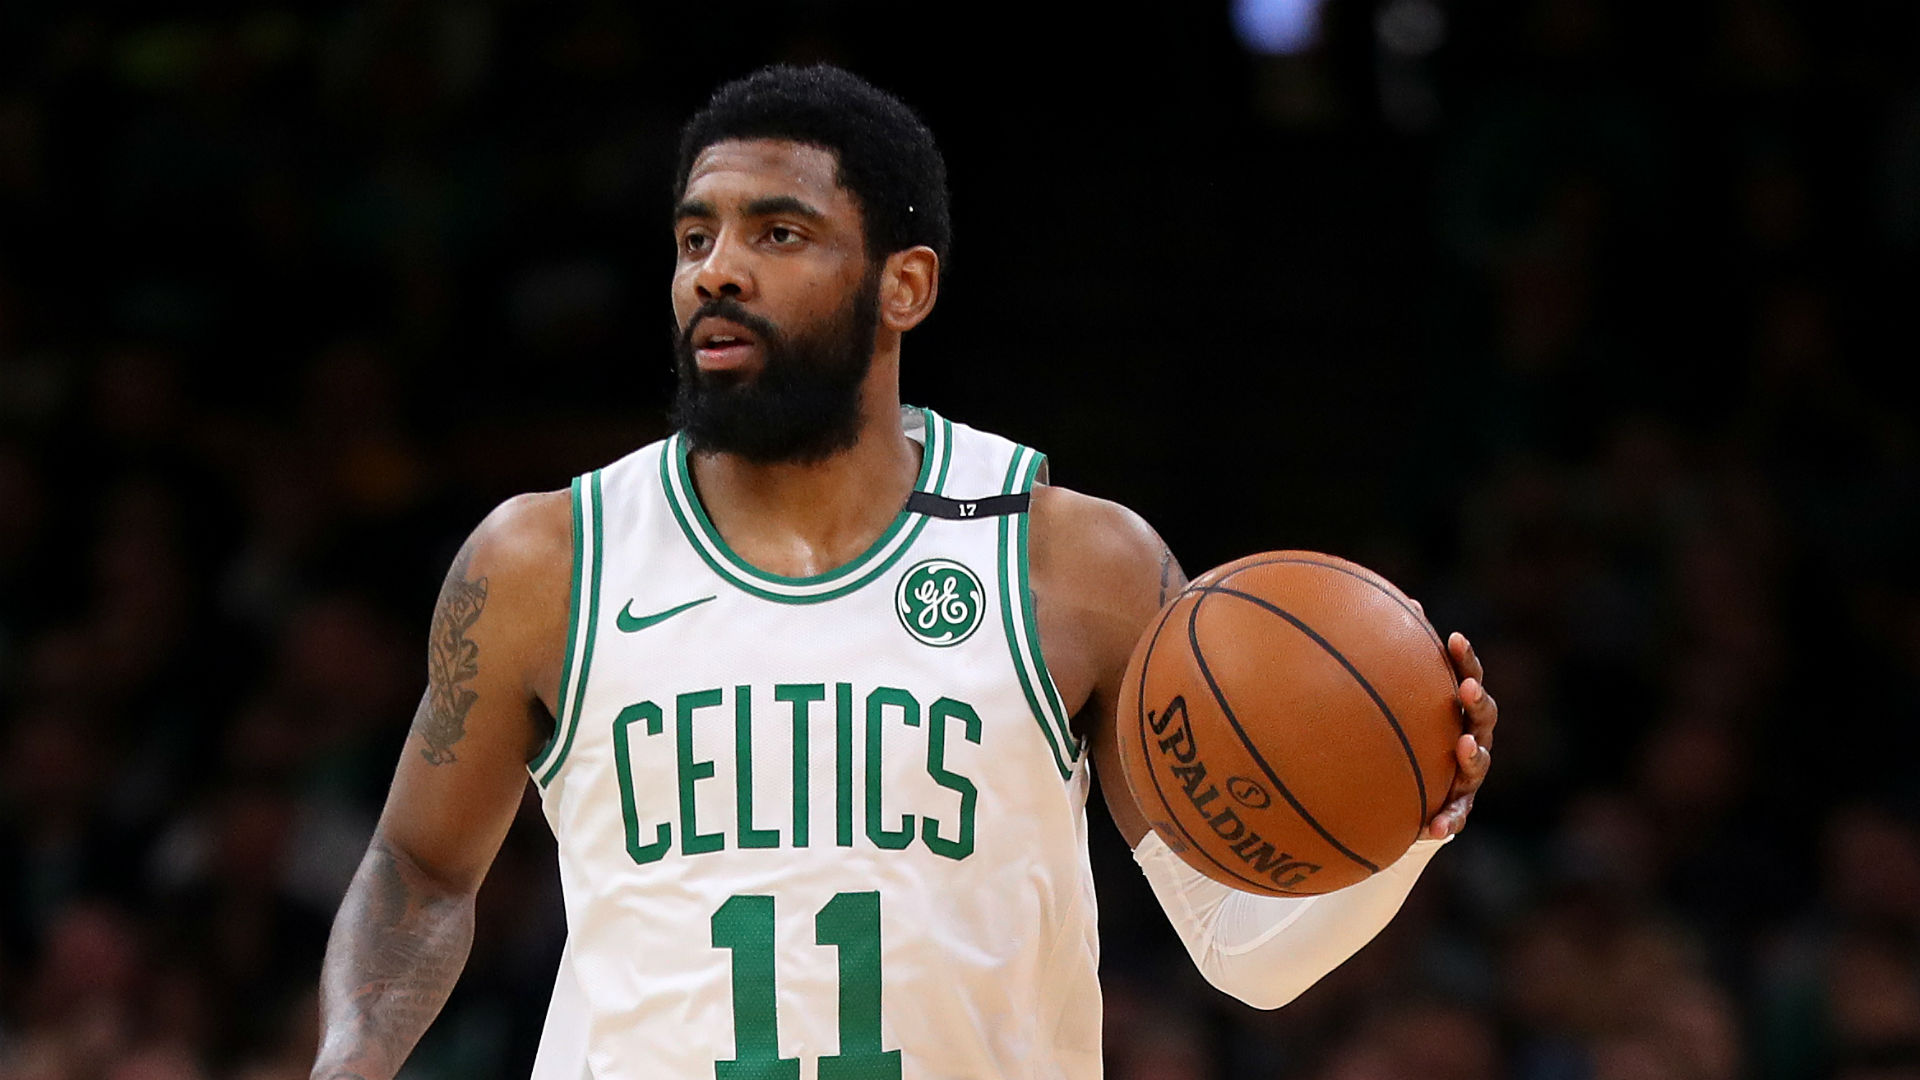 Kyrie Irving free agency rumors: Celtics have 'had little, if any, communication' with star in recent weeks